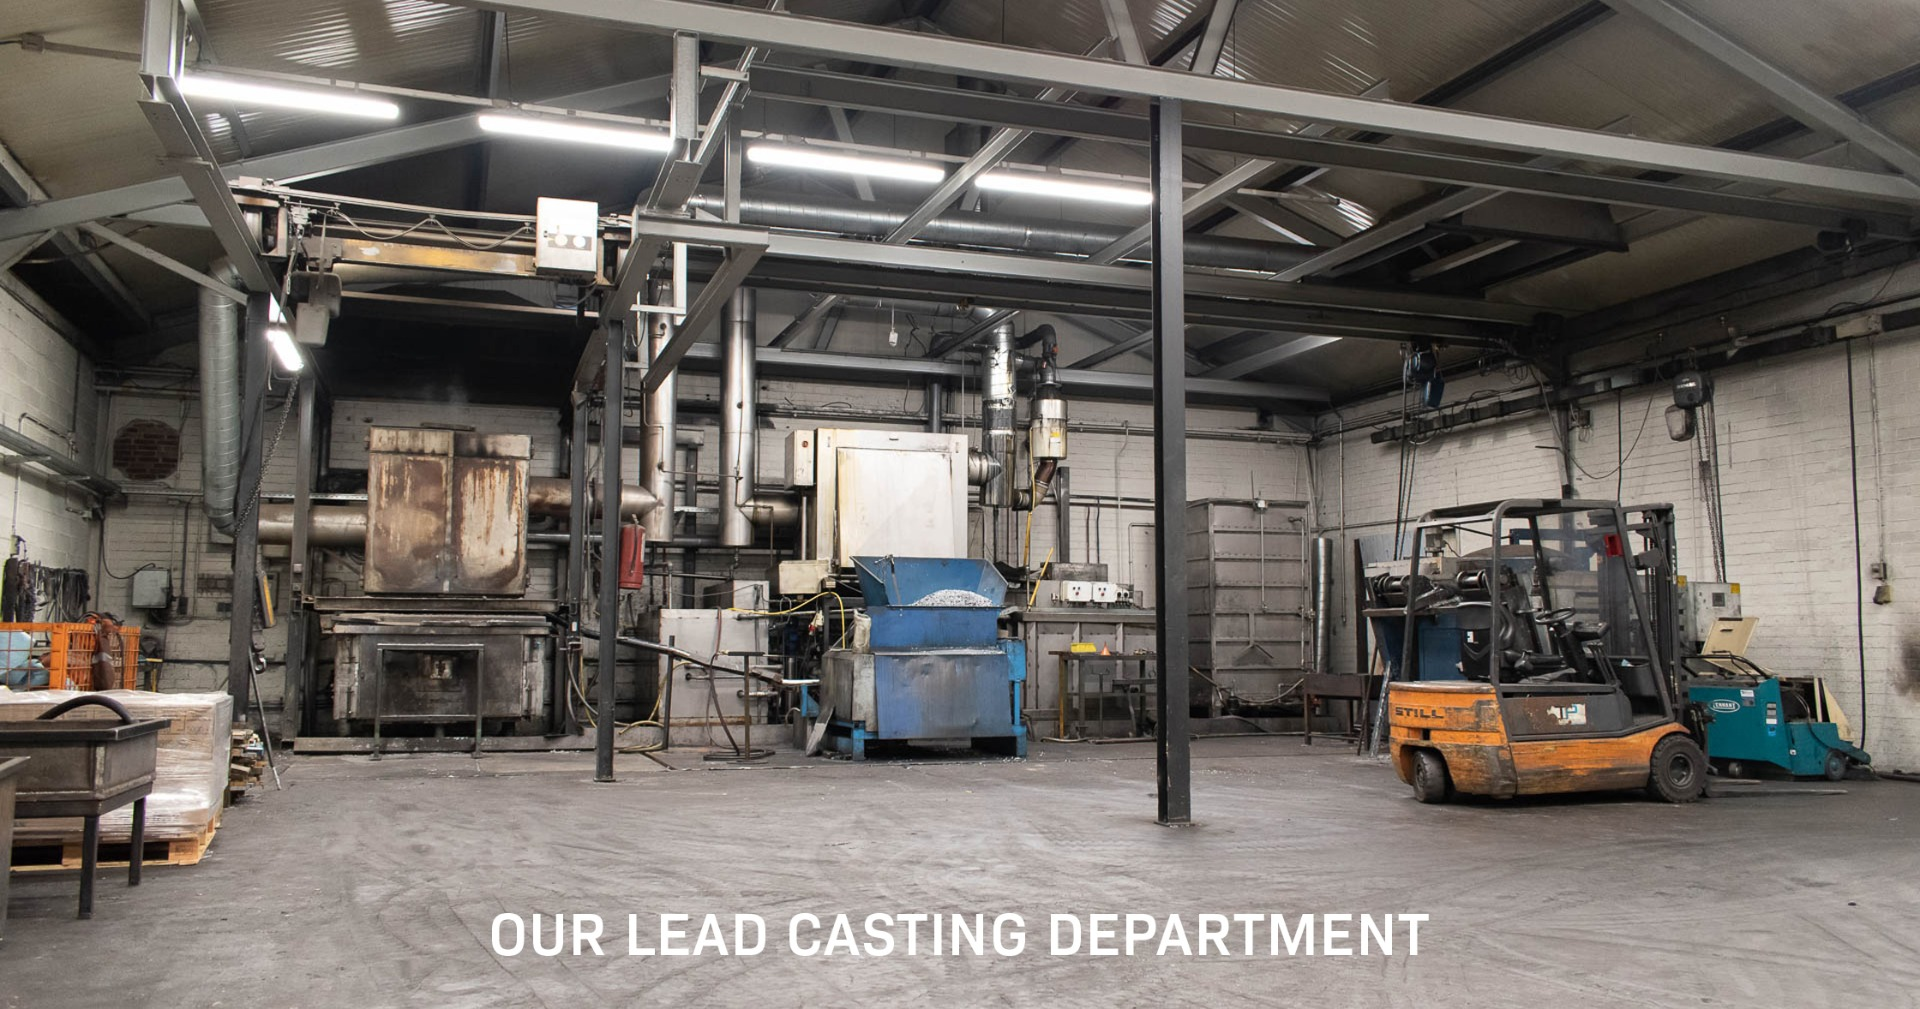 Lead casting department from Nuclear Shields